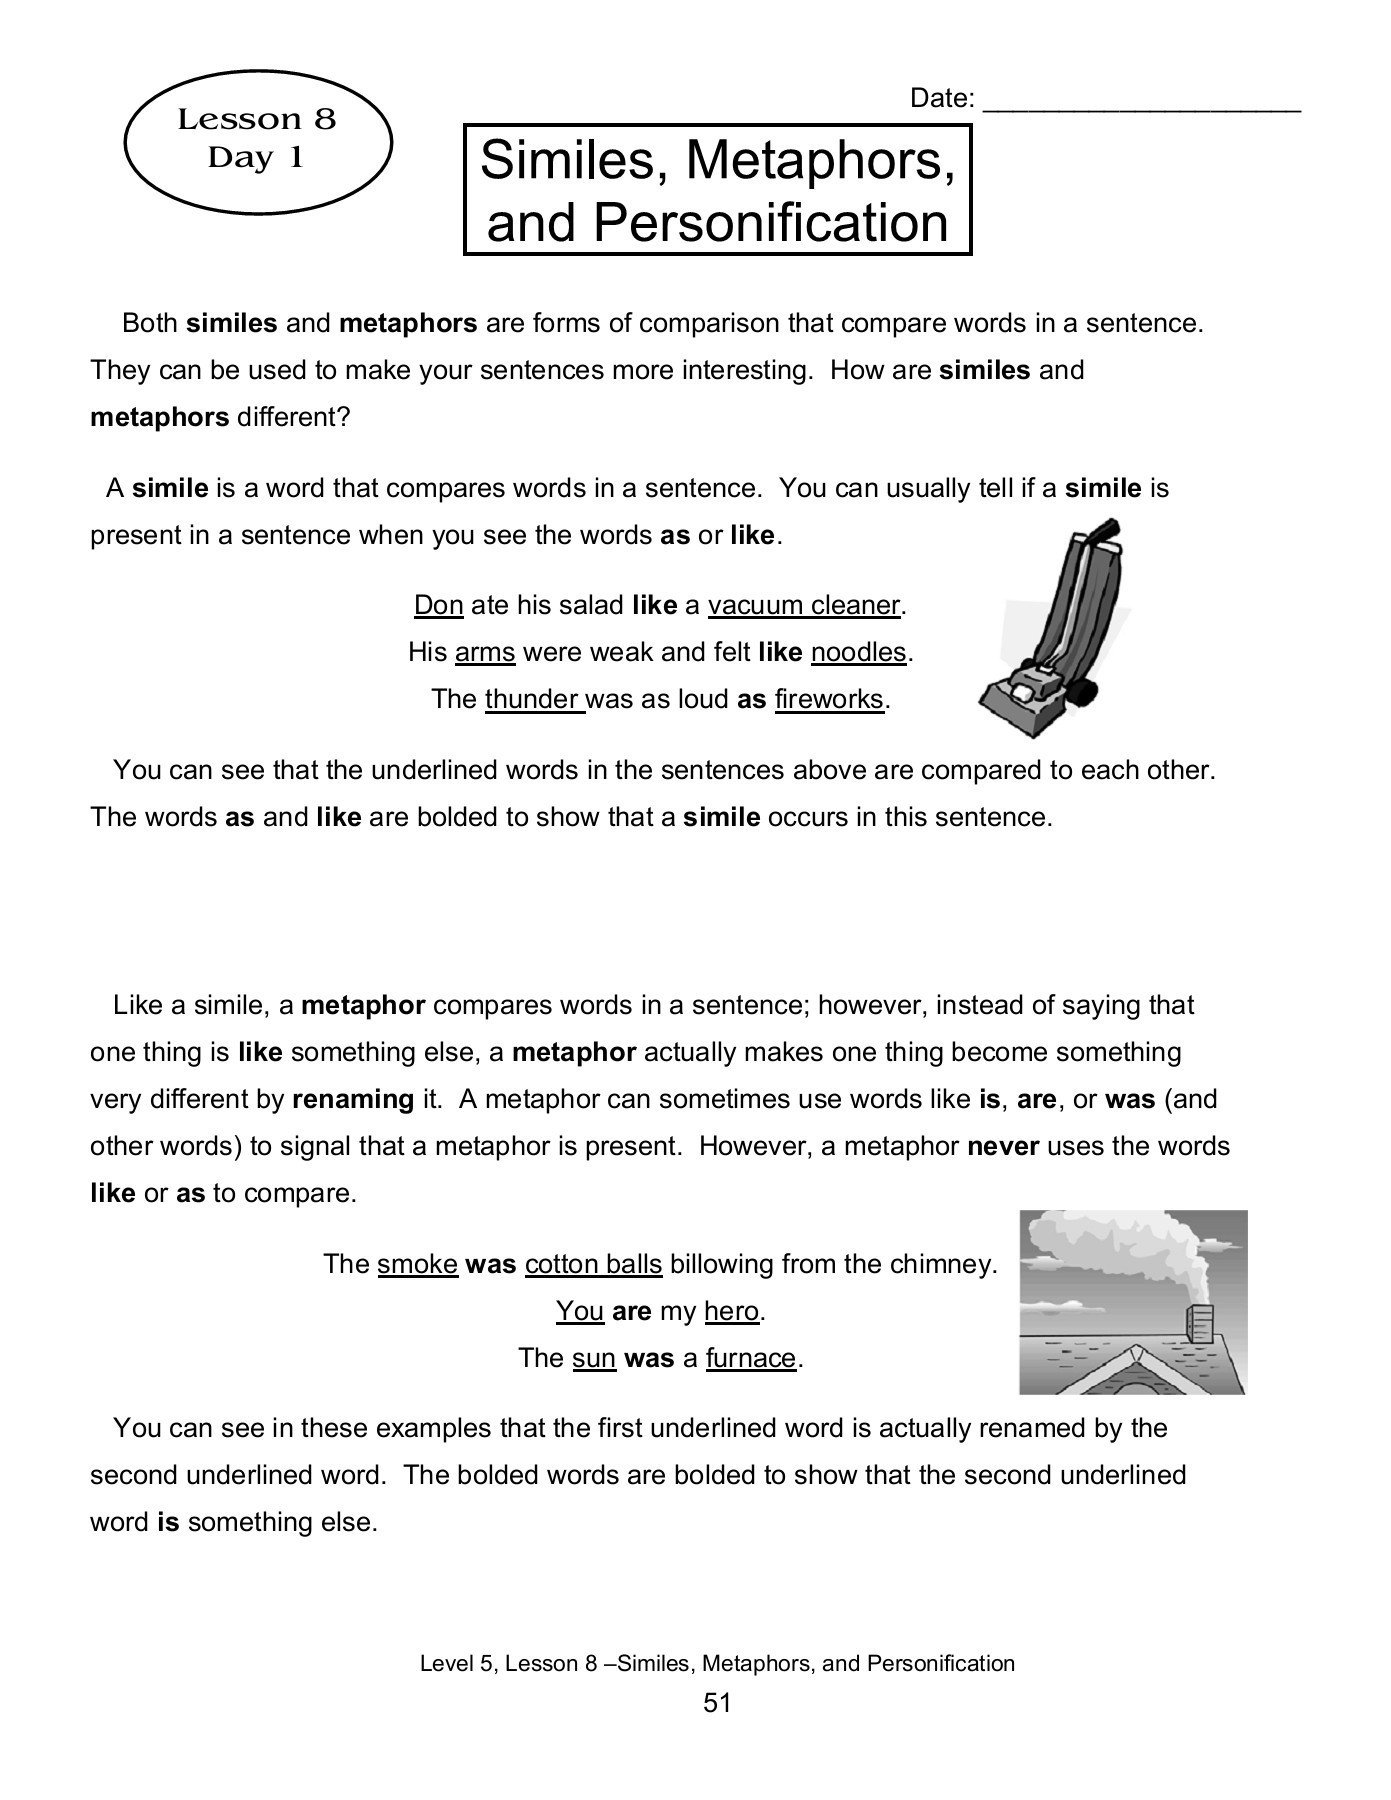 Personification Worksheets Answers Lesson 8 Similes Metaphors and Personification Pages 1